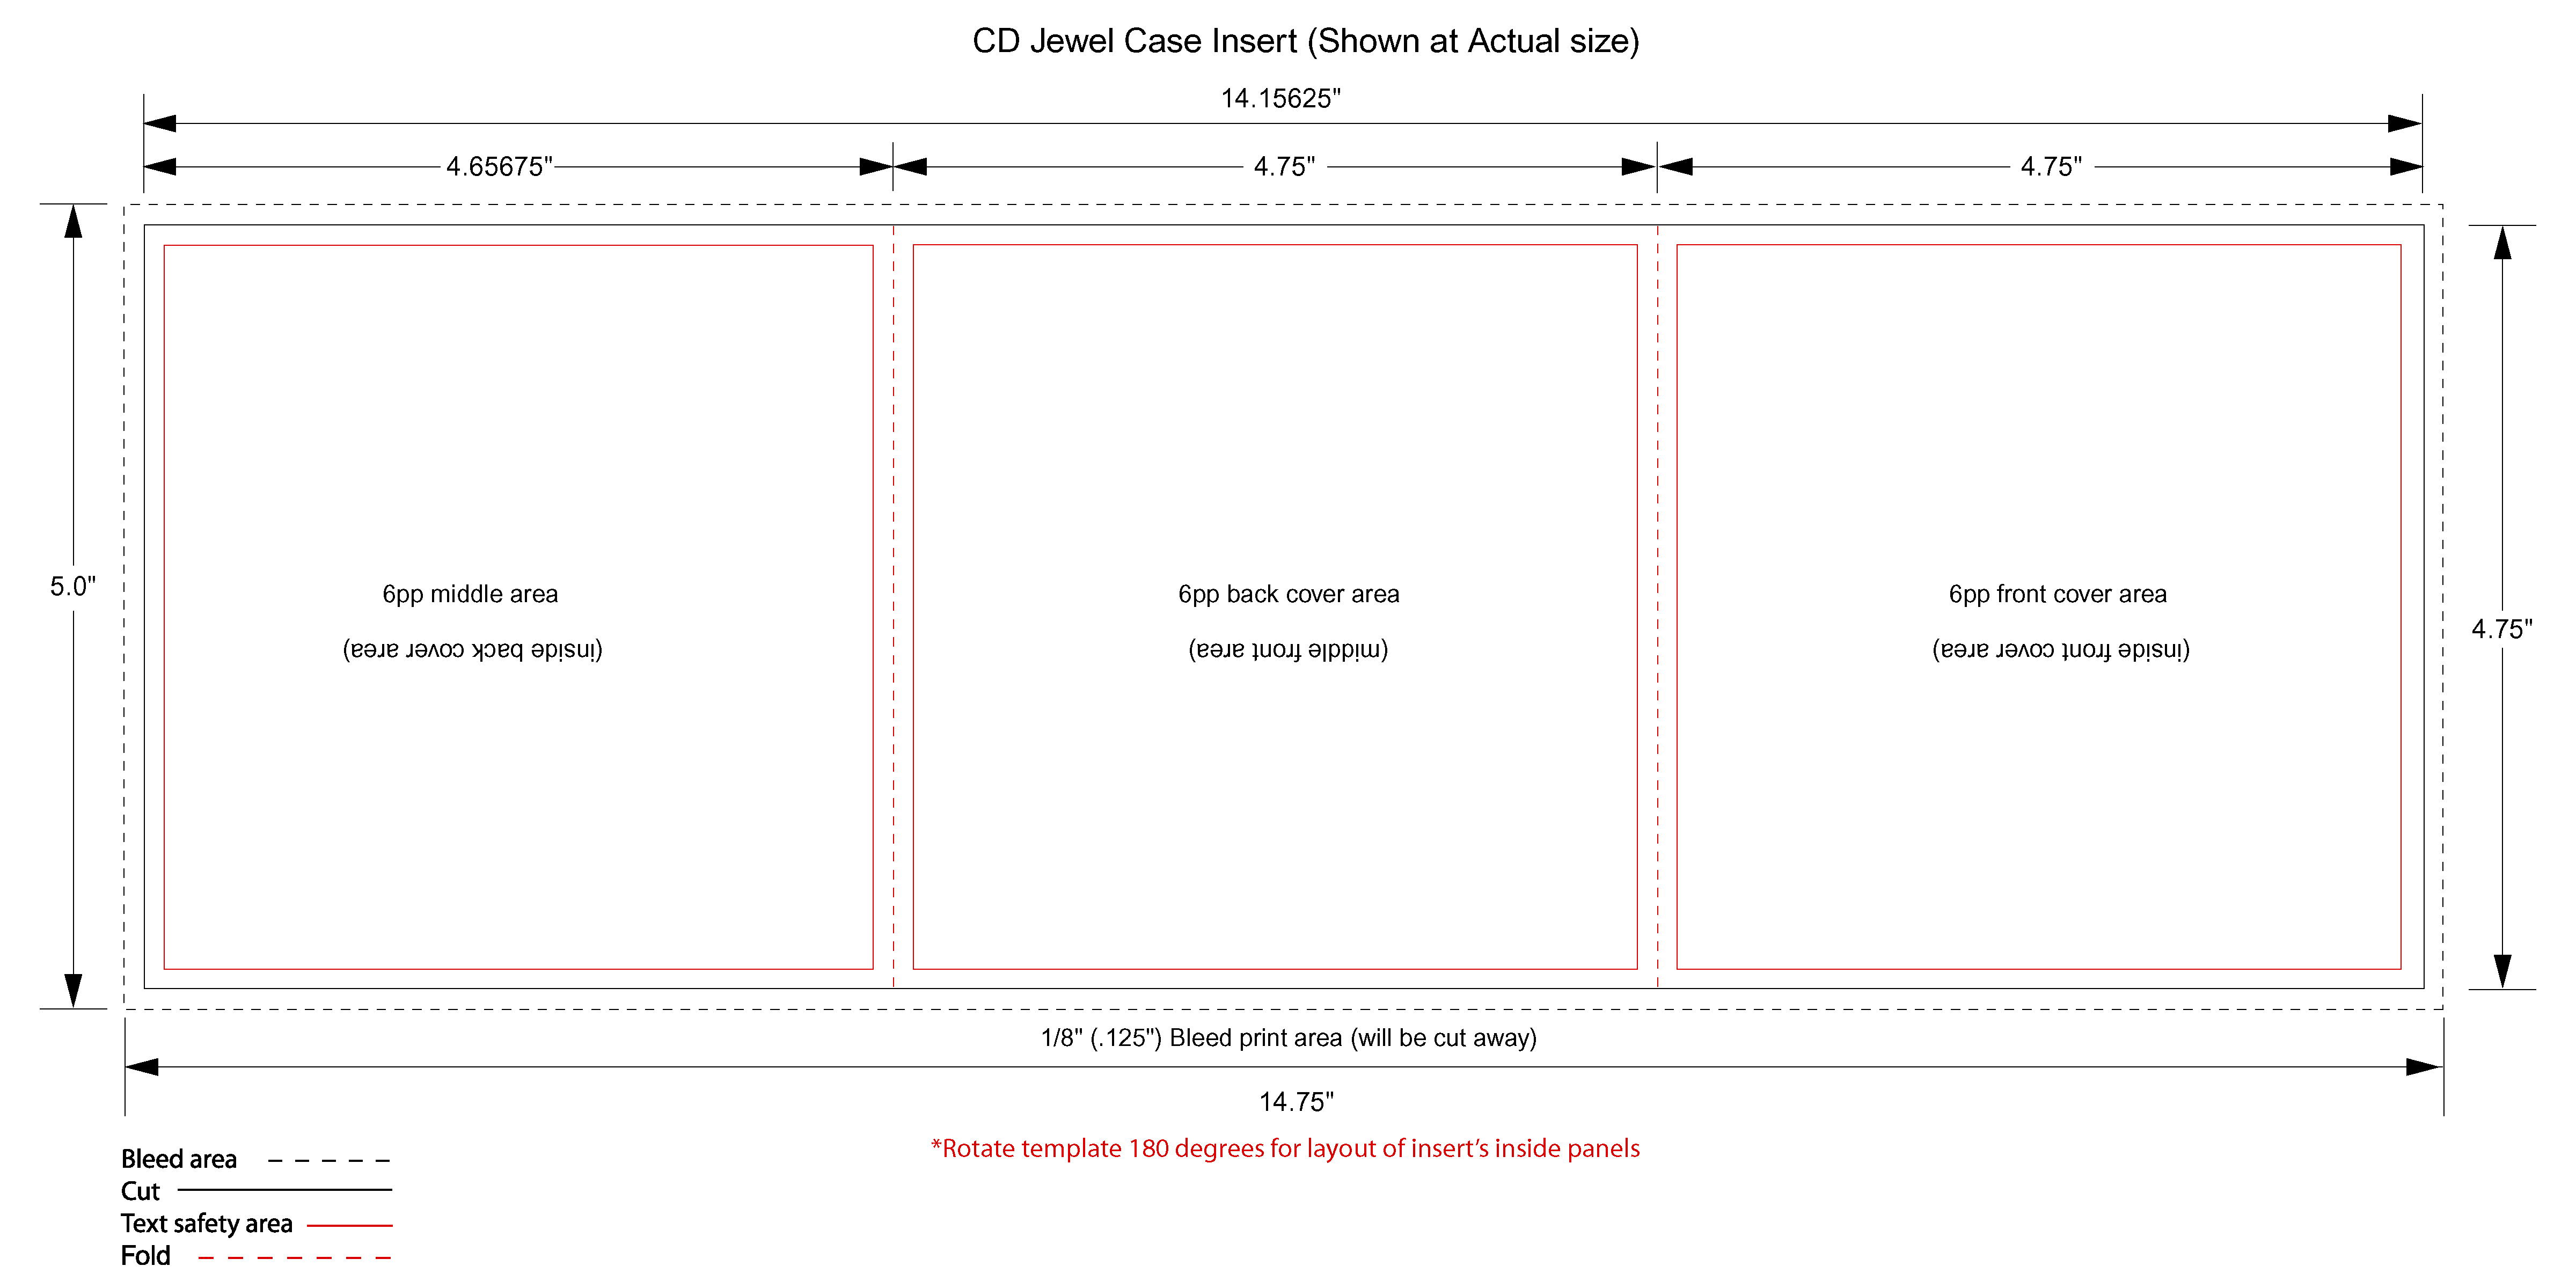 13 Free Cd Cover Insert Template Images – Cd Jewel Case Intended For Cd Liner Notes Template Word